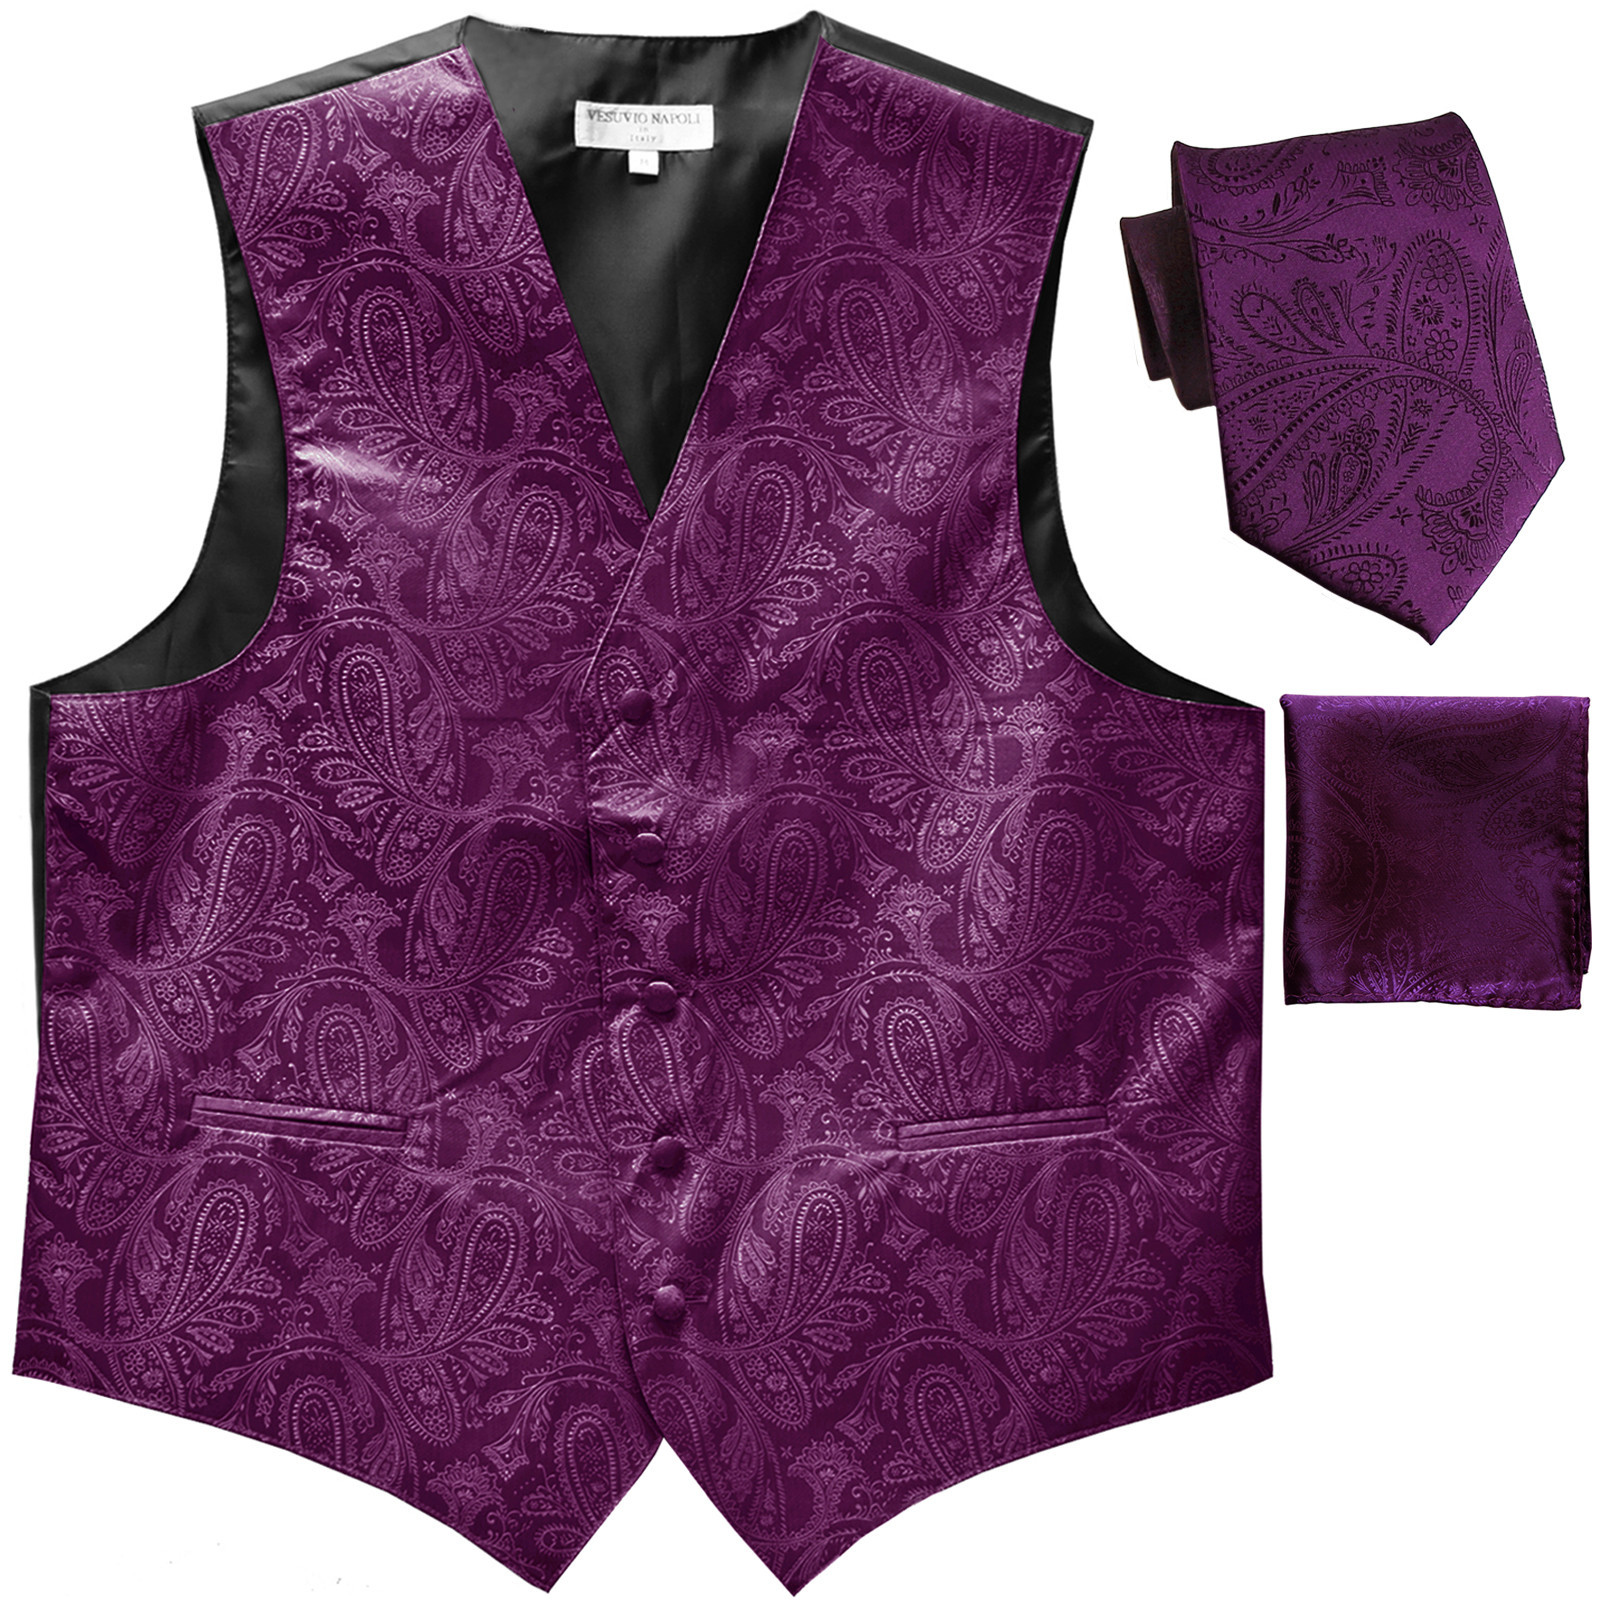 Men's Paisley Purple Polyester Tuxedo Vest with Self Tie Necktie, Pre-Tied Bowtie, and Handkerchief, for Formal Occasions